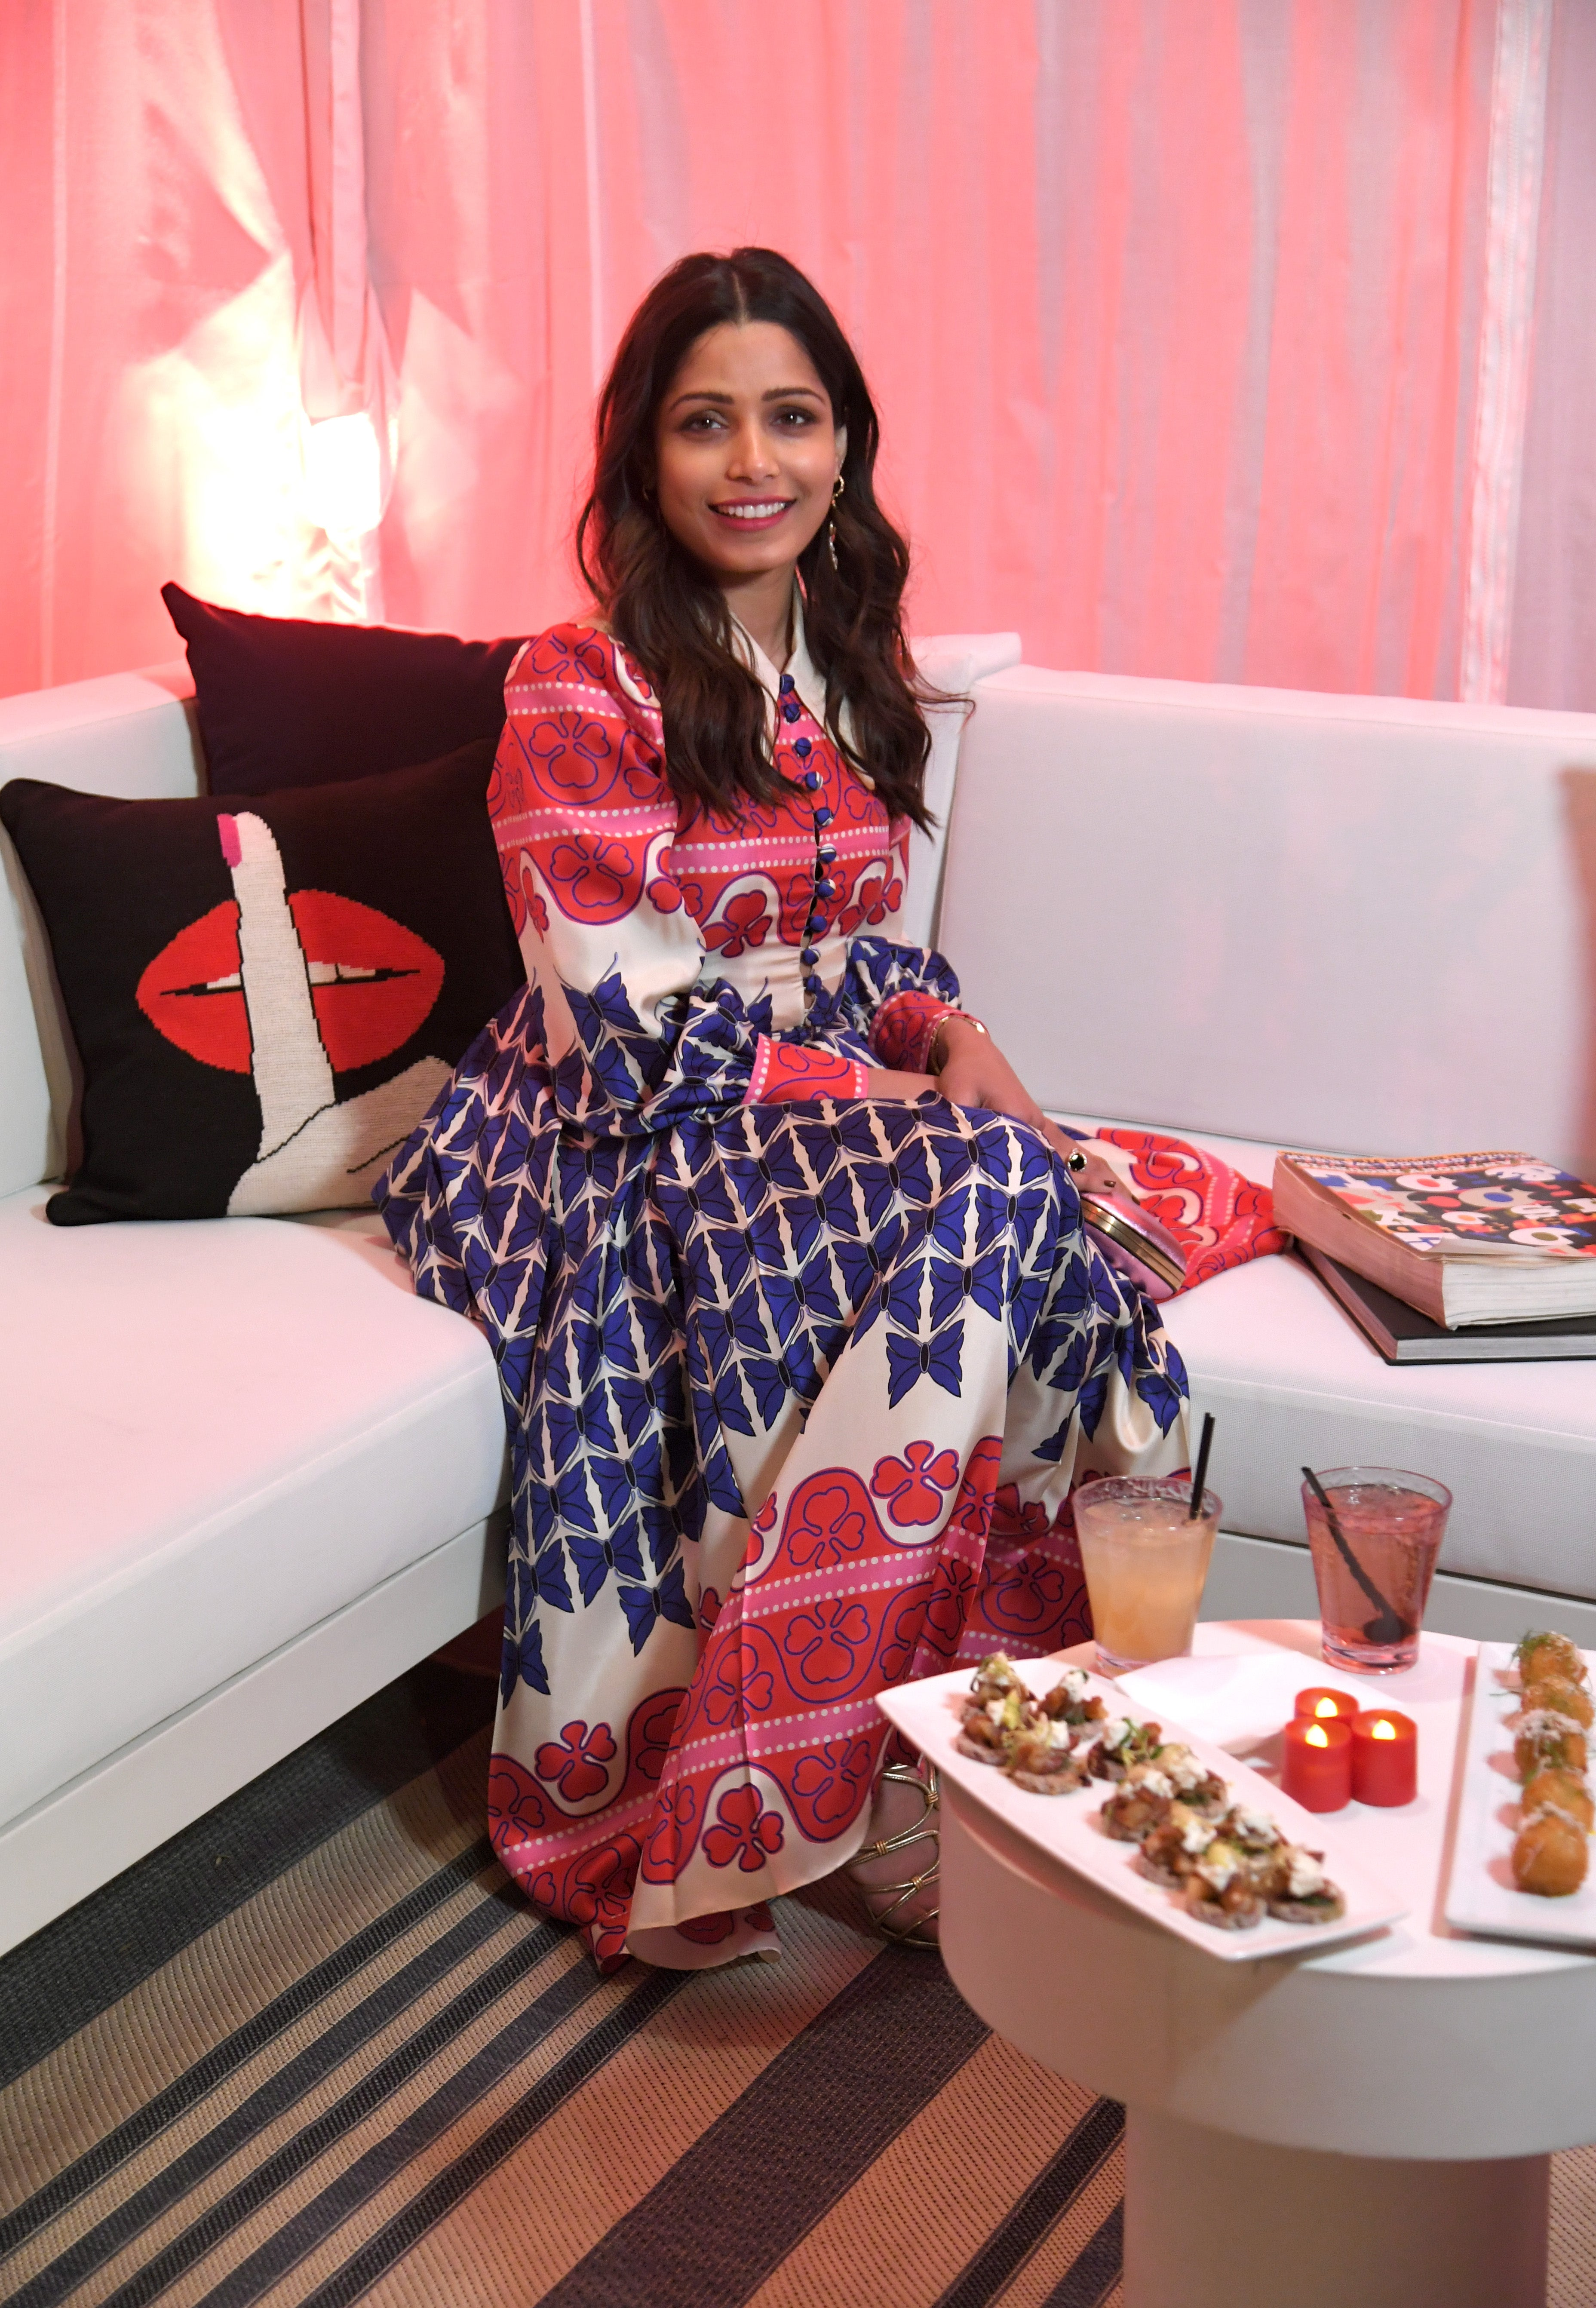 Star Sightings Stephen Colbert Talks Louis Ck With Samantha Raisa Blouse In Light Blue Beatrice Clothing Freida Pinto And Andaz